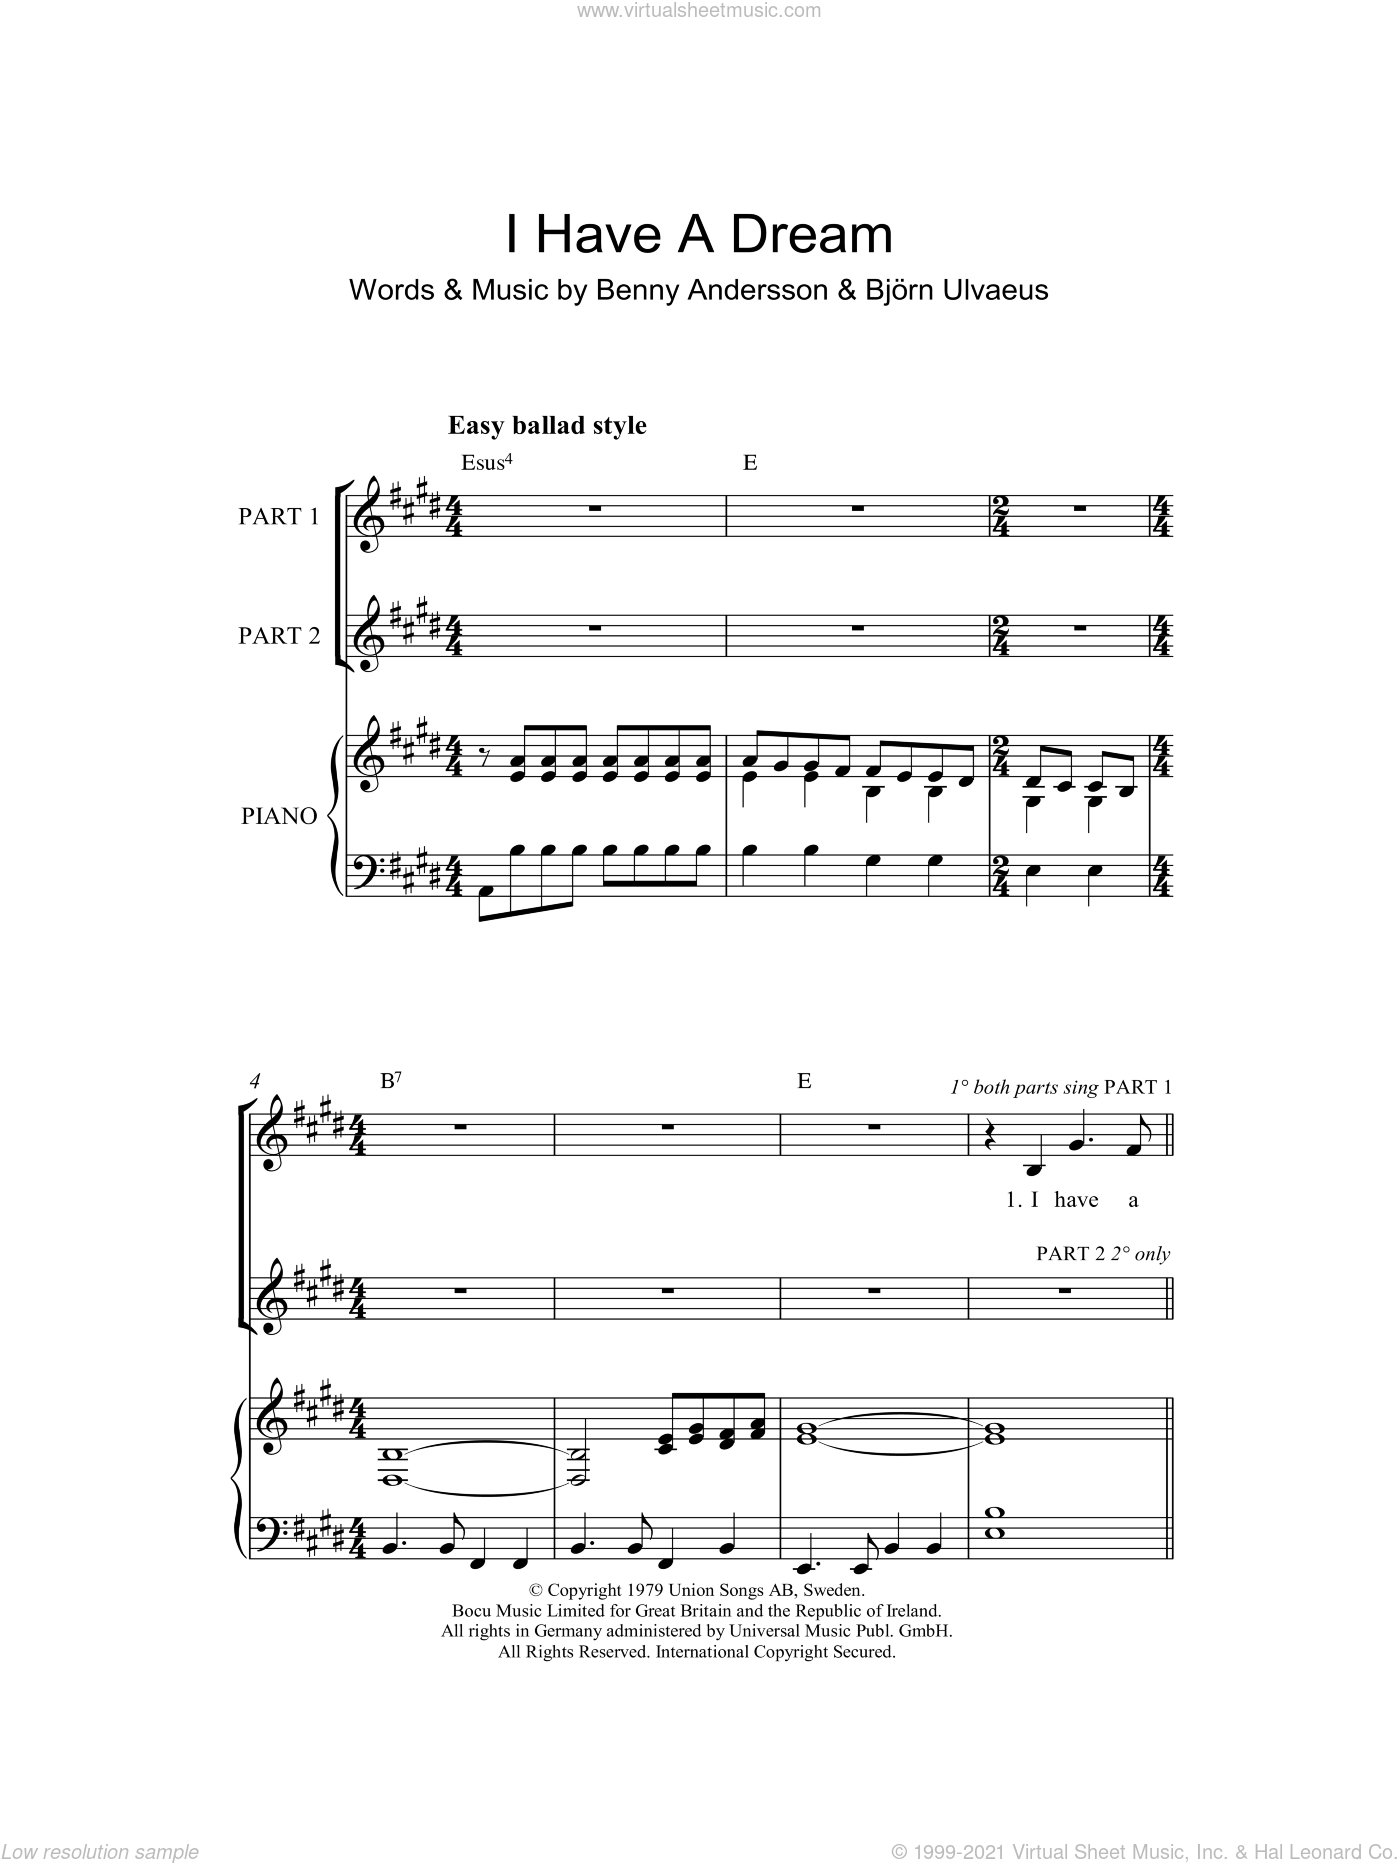 I Have A Dream (arr. Rick Hein) sheet music for choir (2-Part) by ABBA, Rick Hein, Benny Andersson and Bjorn Ulvaeus, intermediate duet